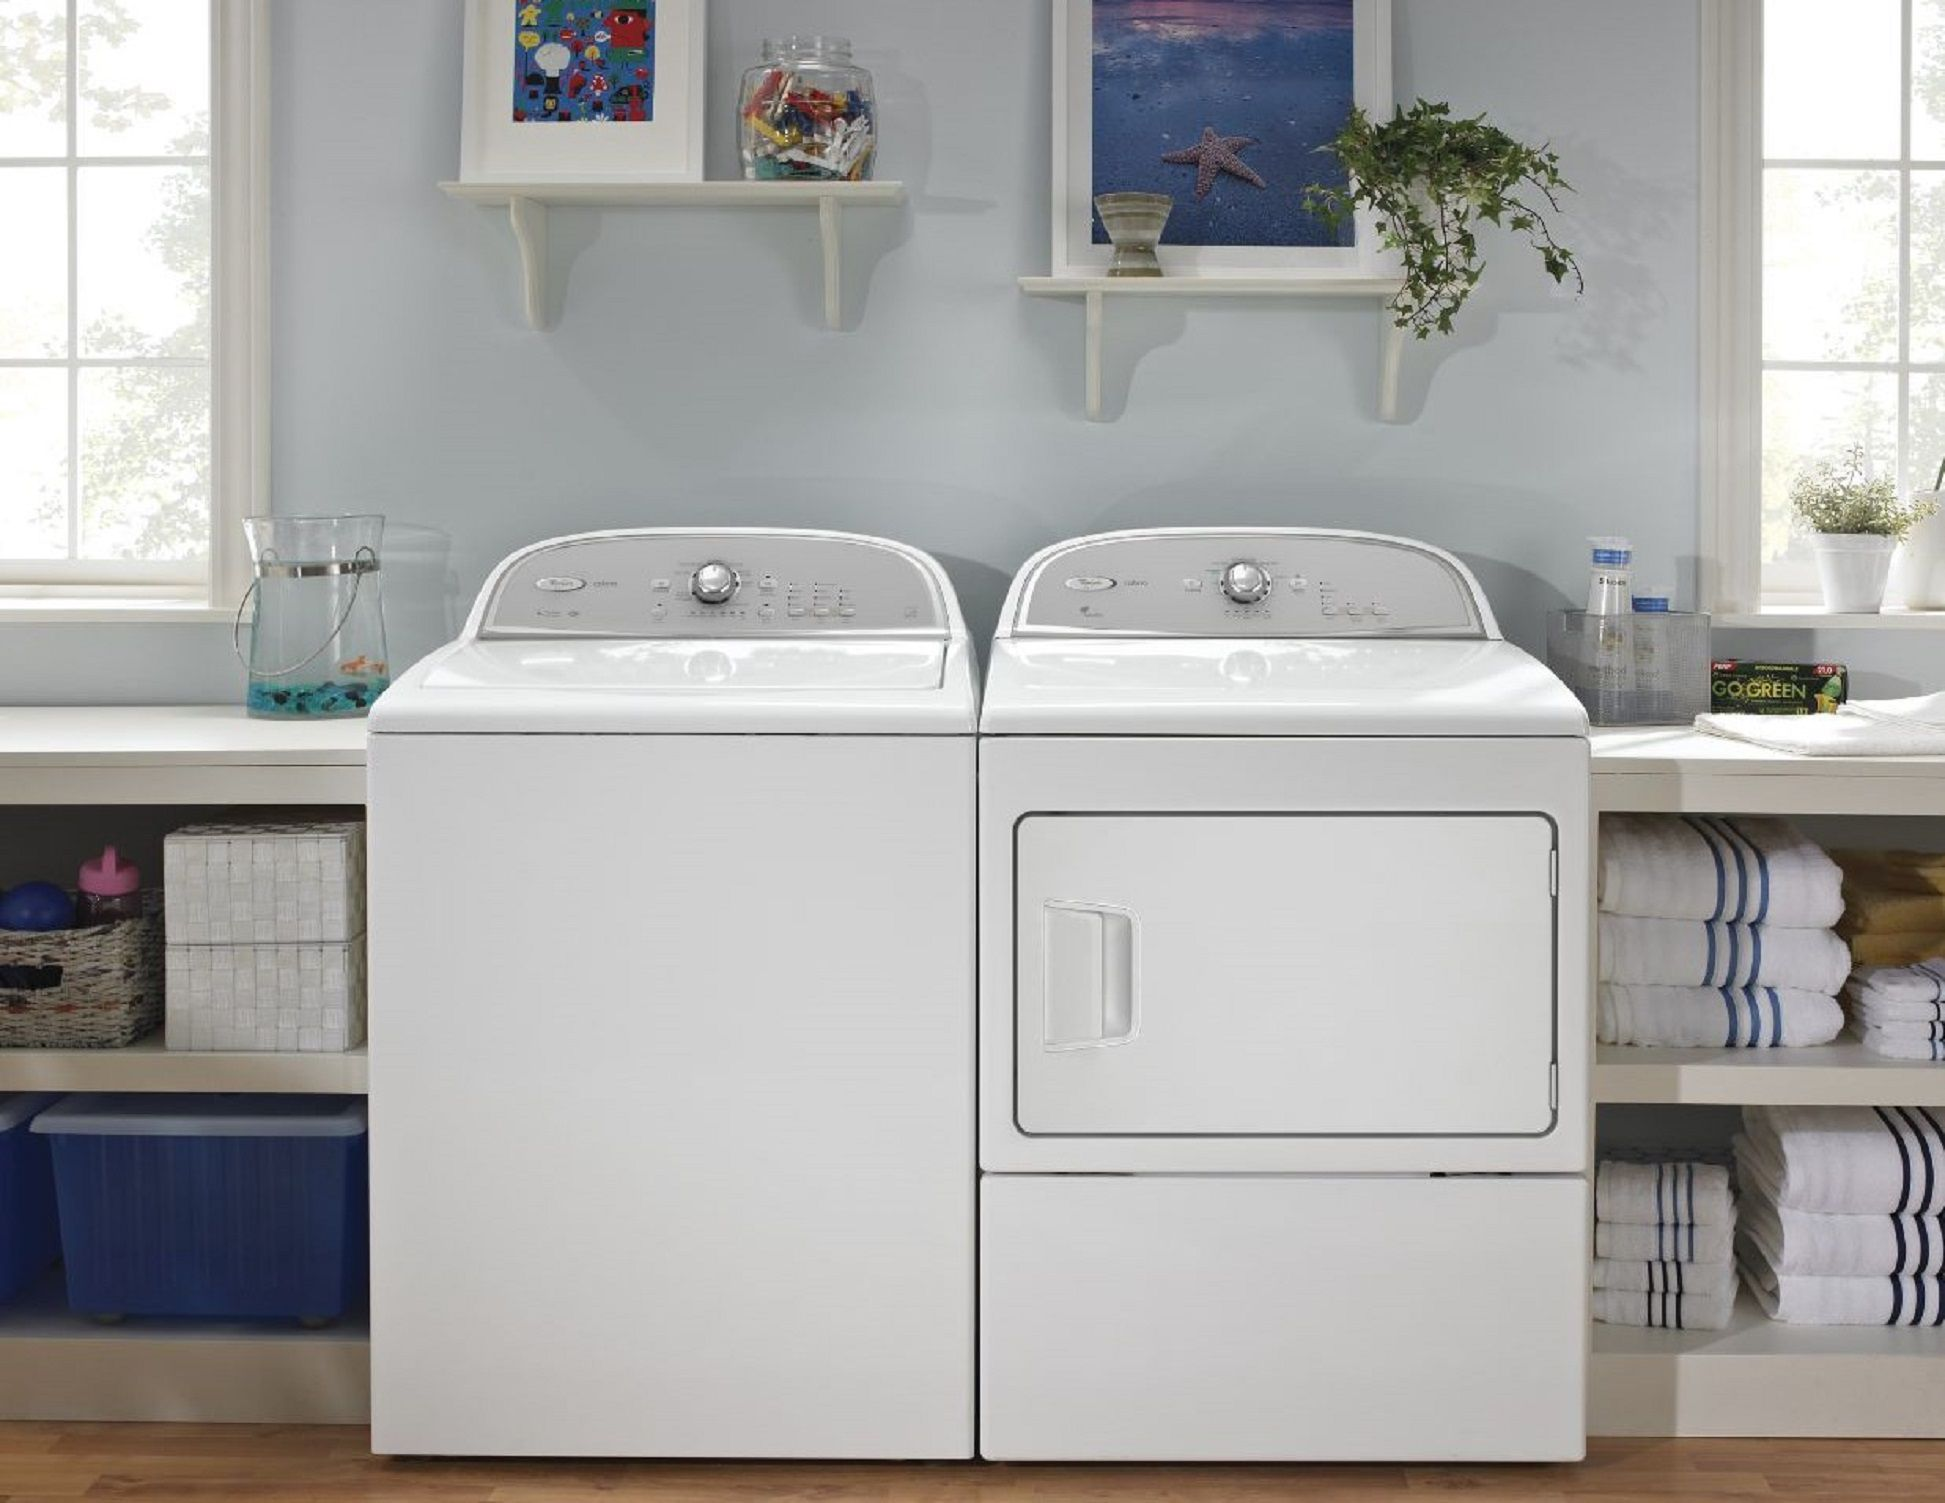 Whirlpool Cabrio Dryer Troubleshooting